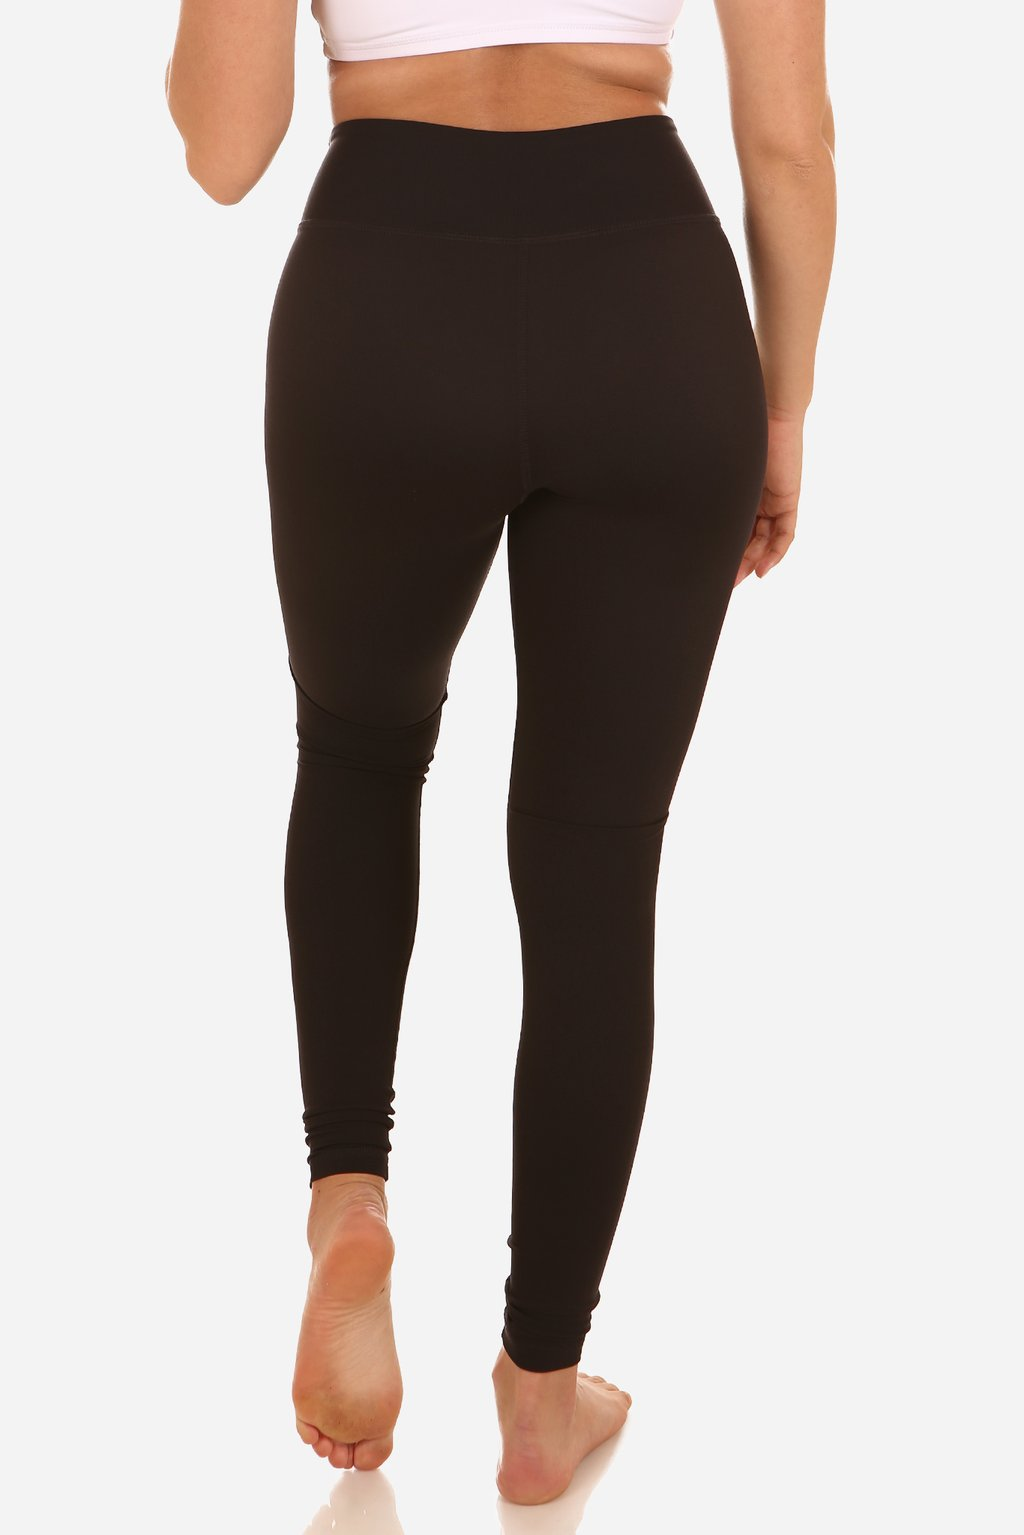 Kaya Leggings - Black